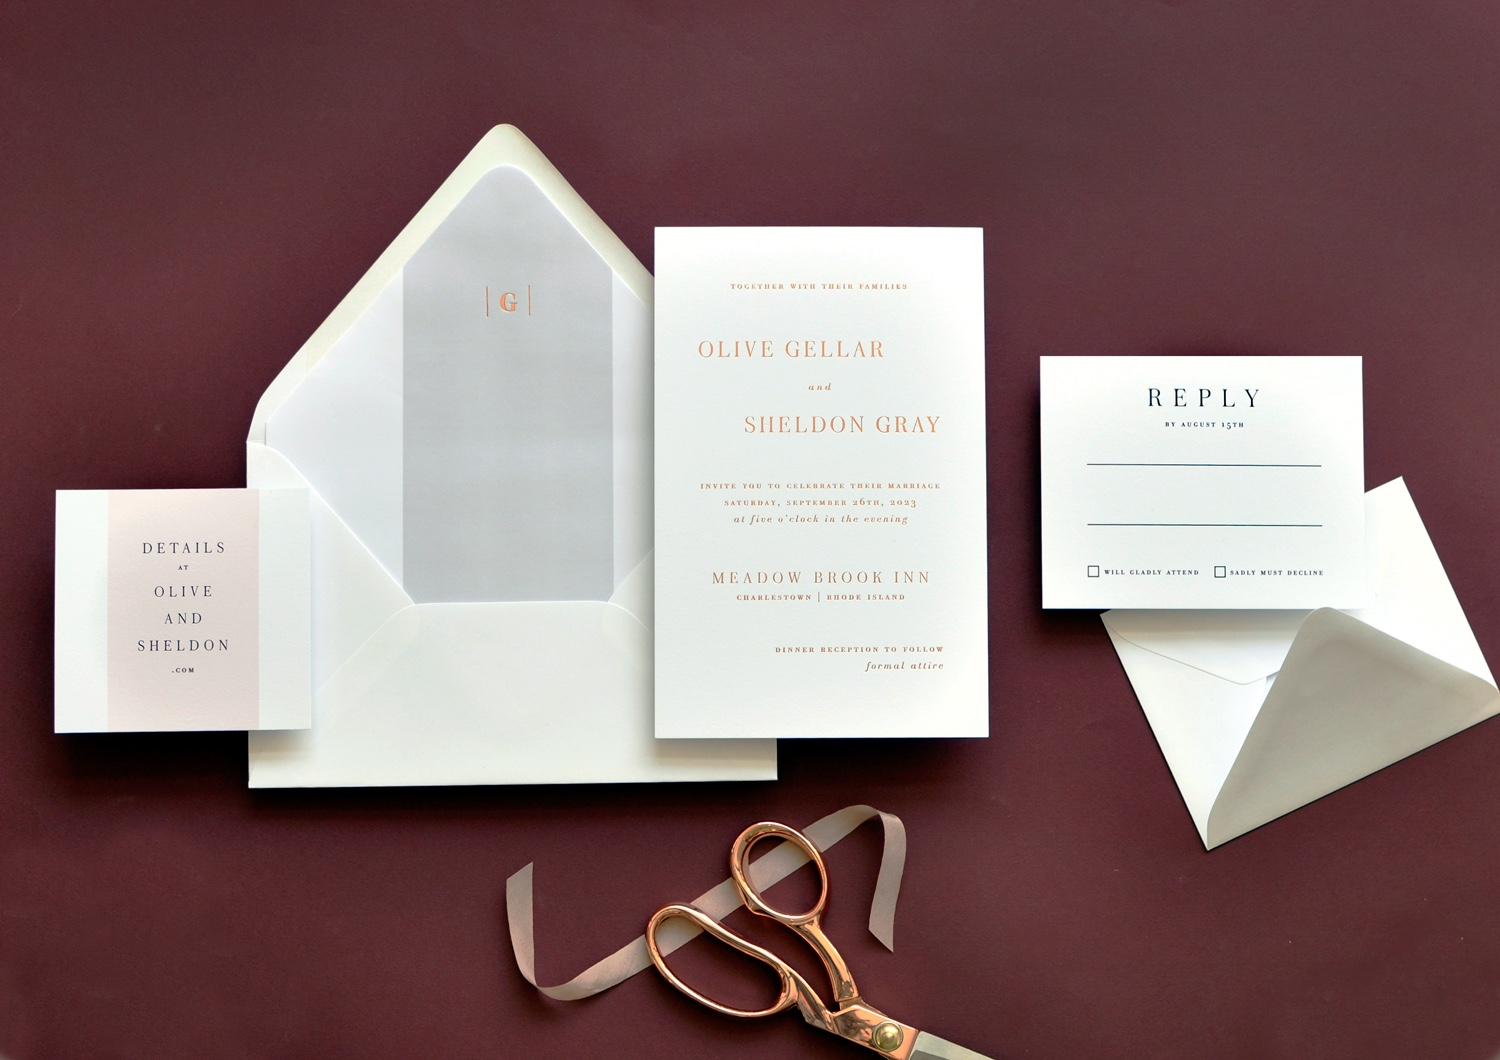 Clean and crips foil stamped wedding invitation is contemporary and elegant.